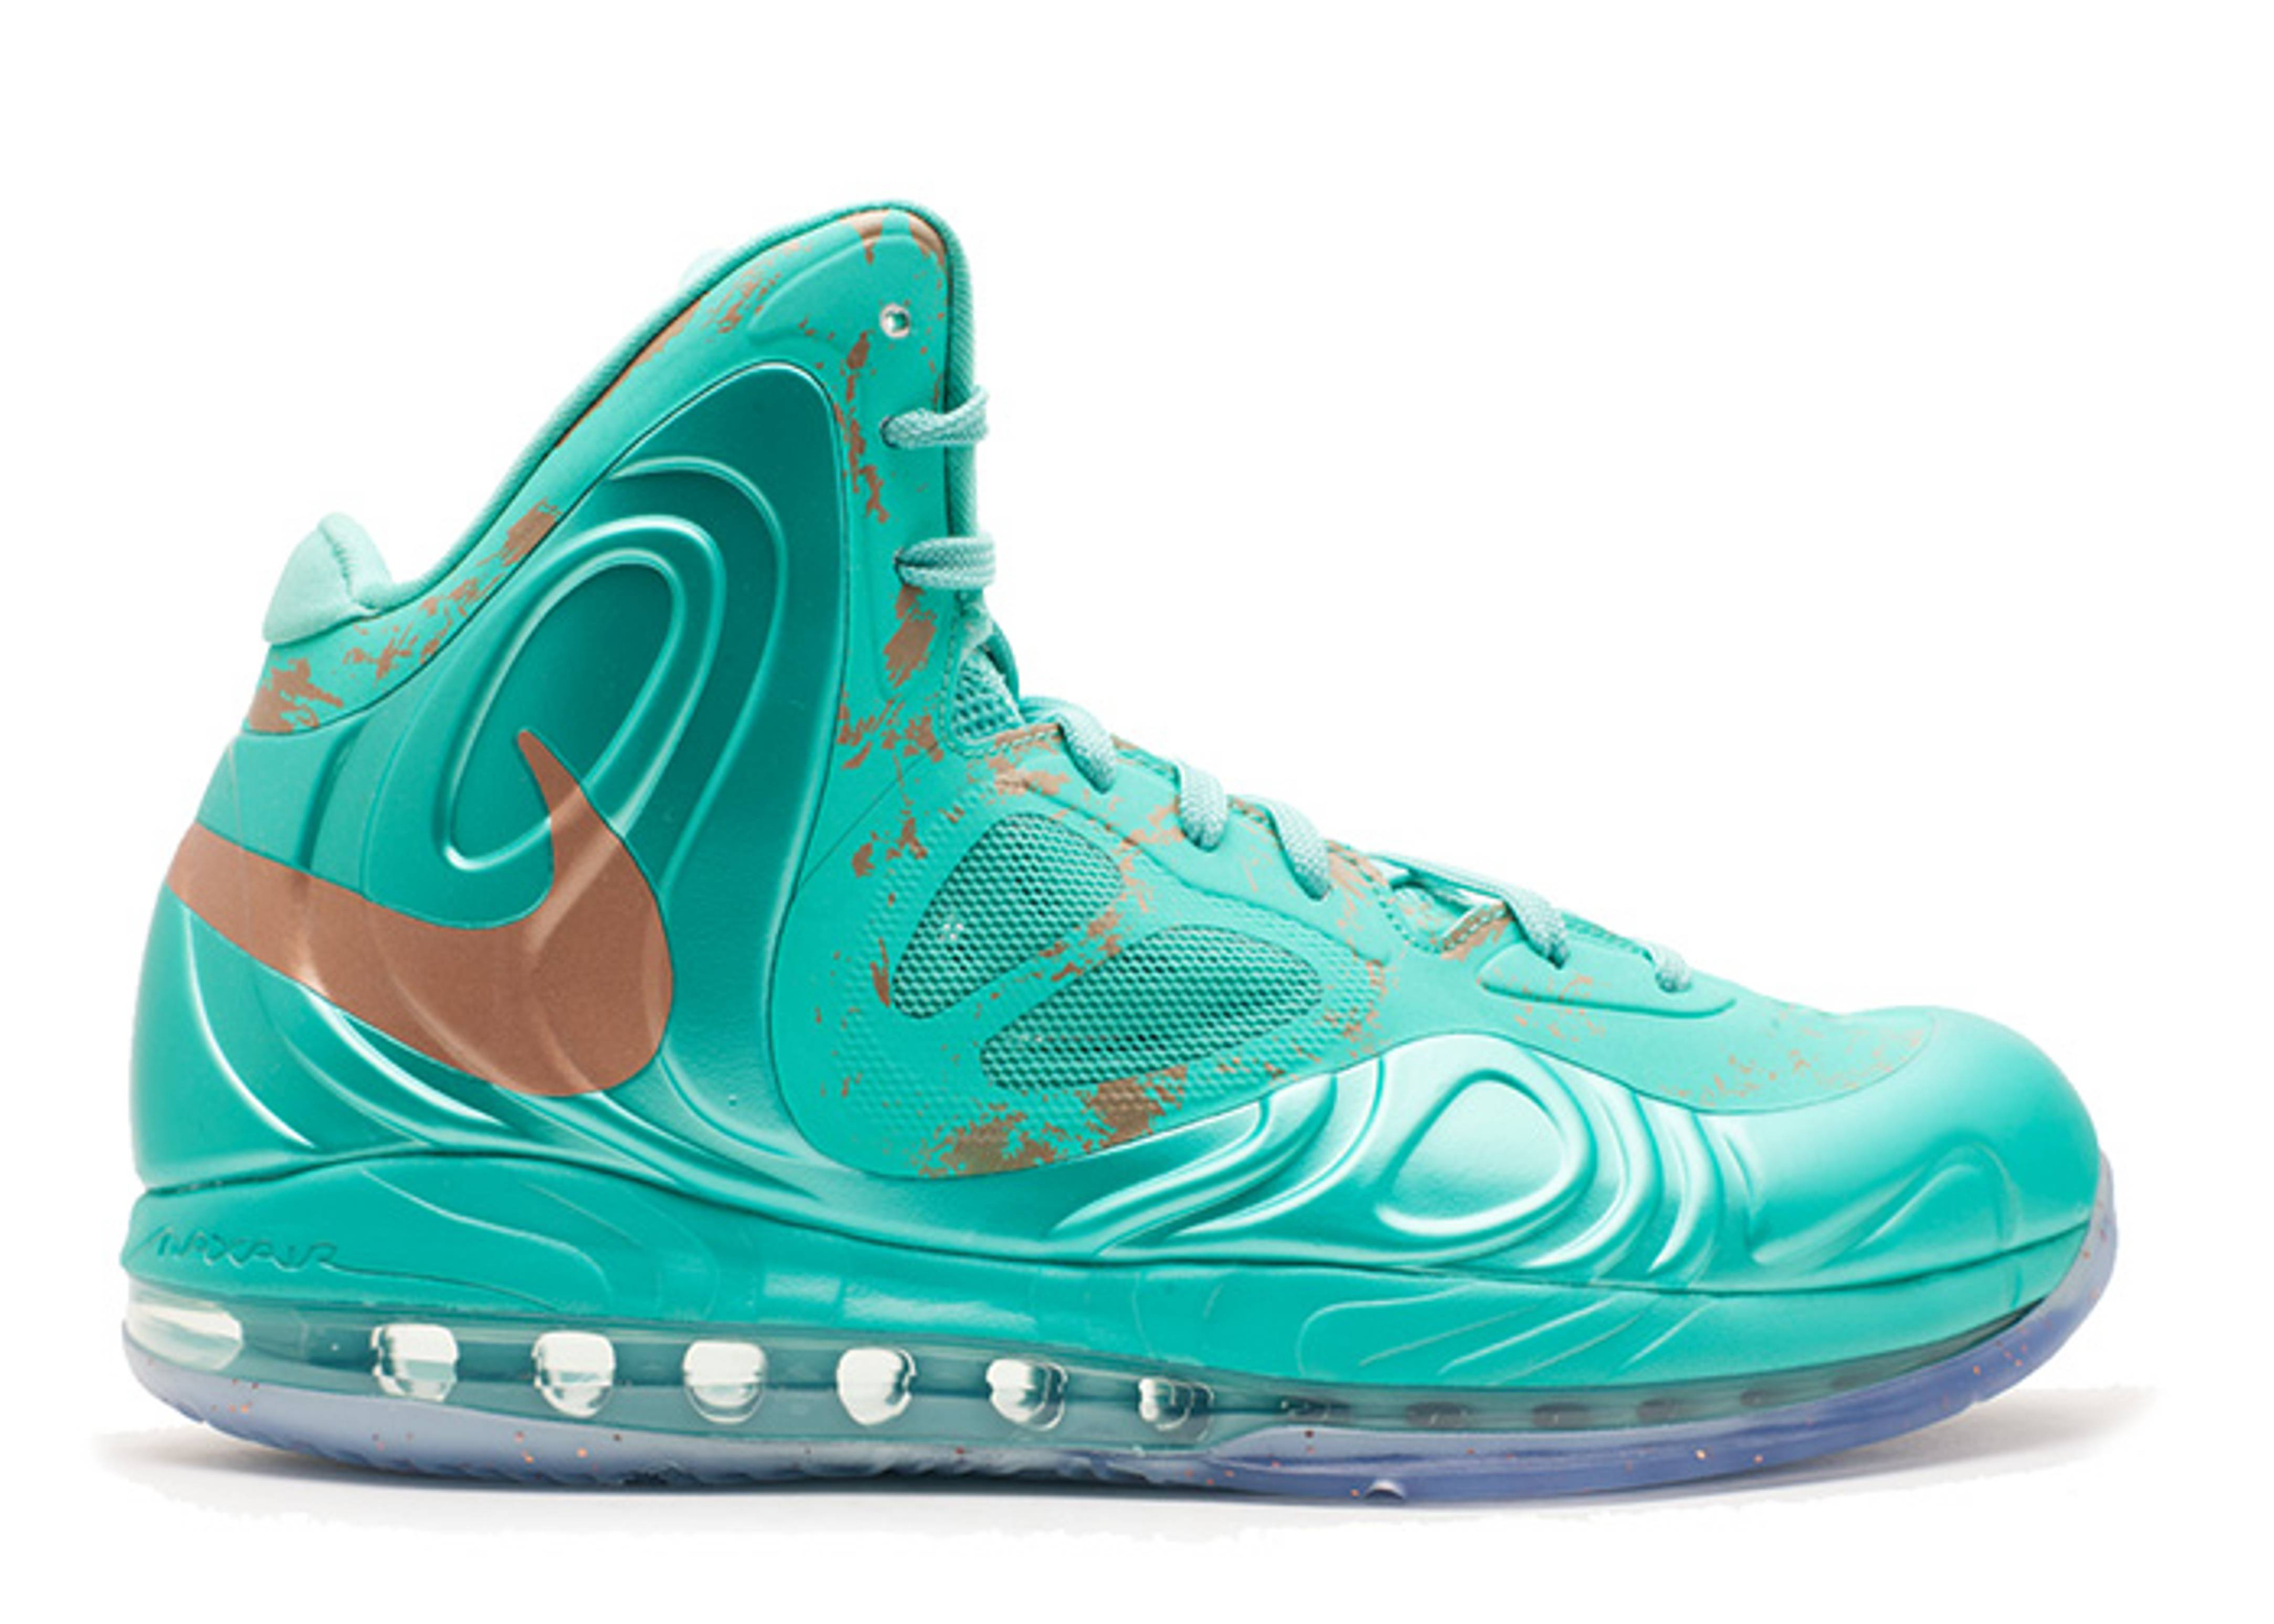 NIKE AIR HYPERPOSITE MAX STATUE OF LIBERTY 524862 301 MINT GREEN